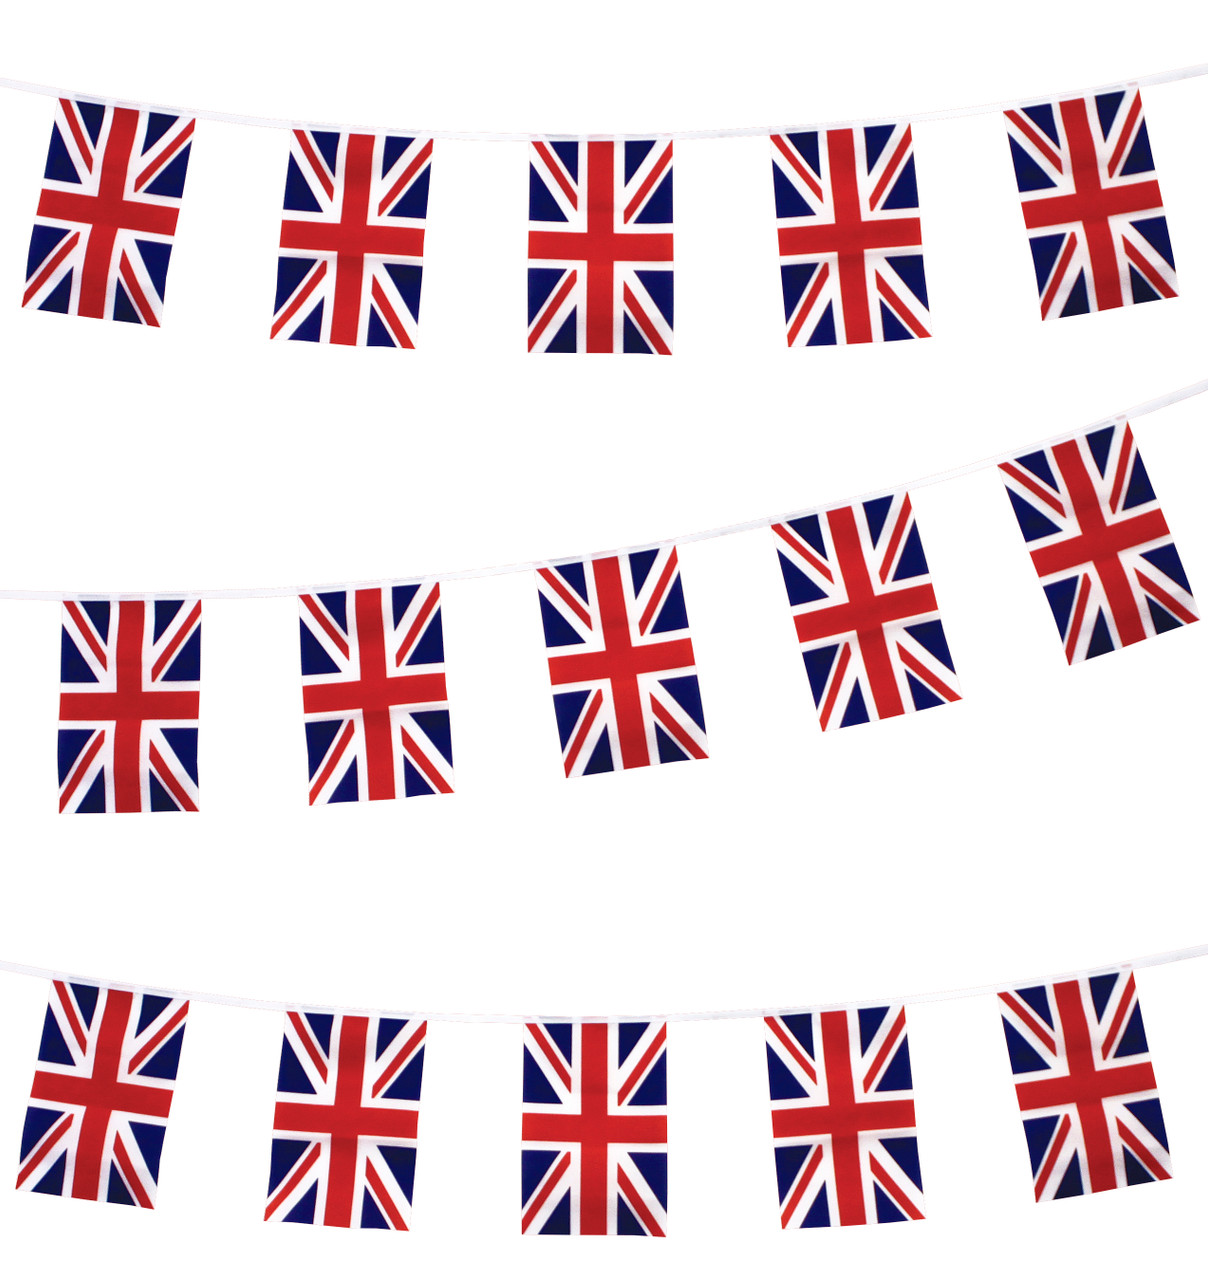 10 Metres 33ft UK GB Union Jack FABRIC Flags Party Bunting SPEEDY DELIVERY